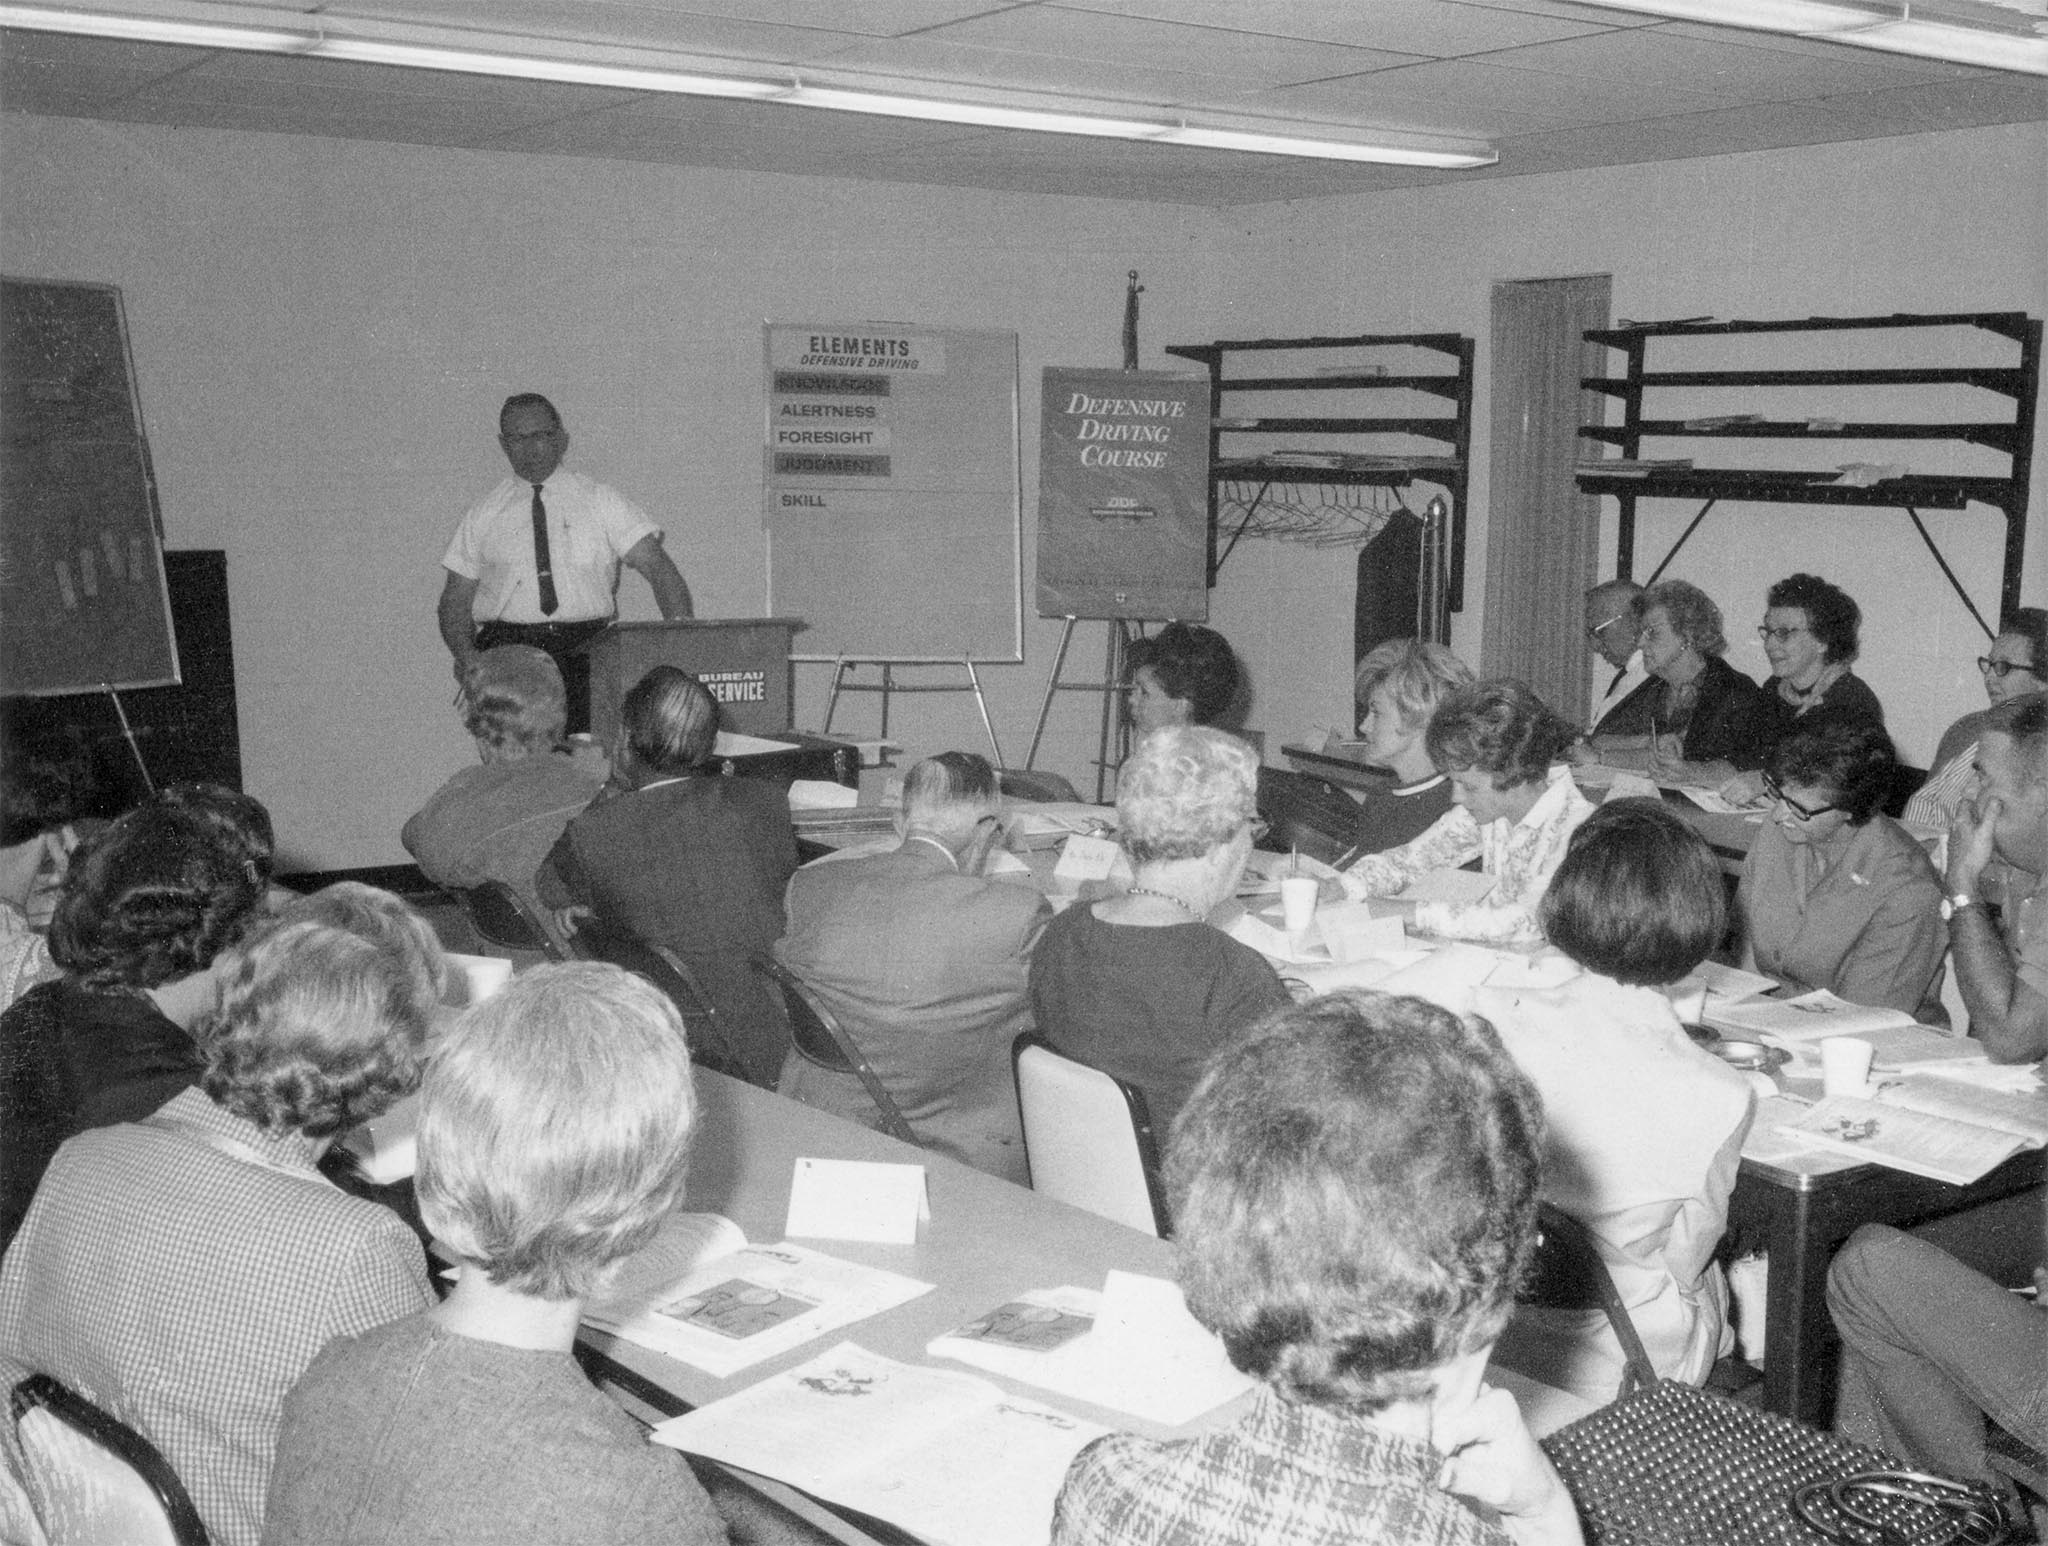 A popular OKFB Safety Service program was the defensive driving class, such as this 1968 event in Enid. Led by instructors Ted Payne and Ervin Heidebrecht, the course included methods of staying alive on the highway and the fundamentals of defensive driving.